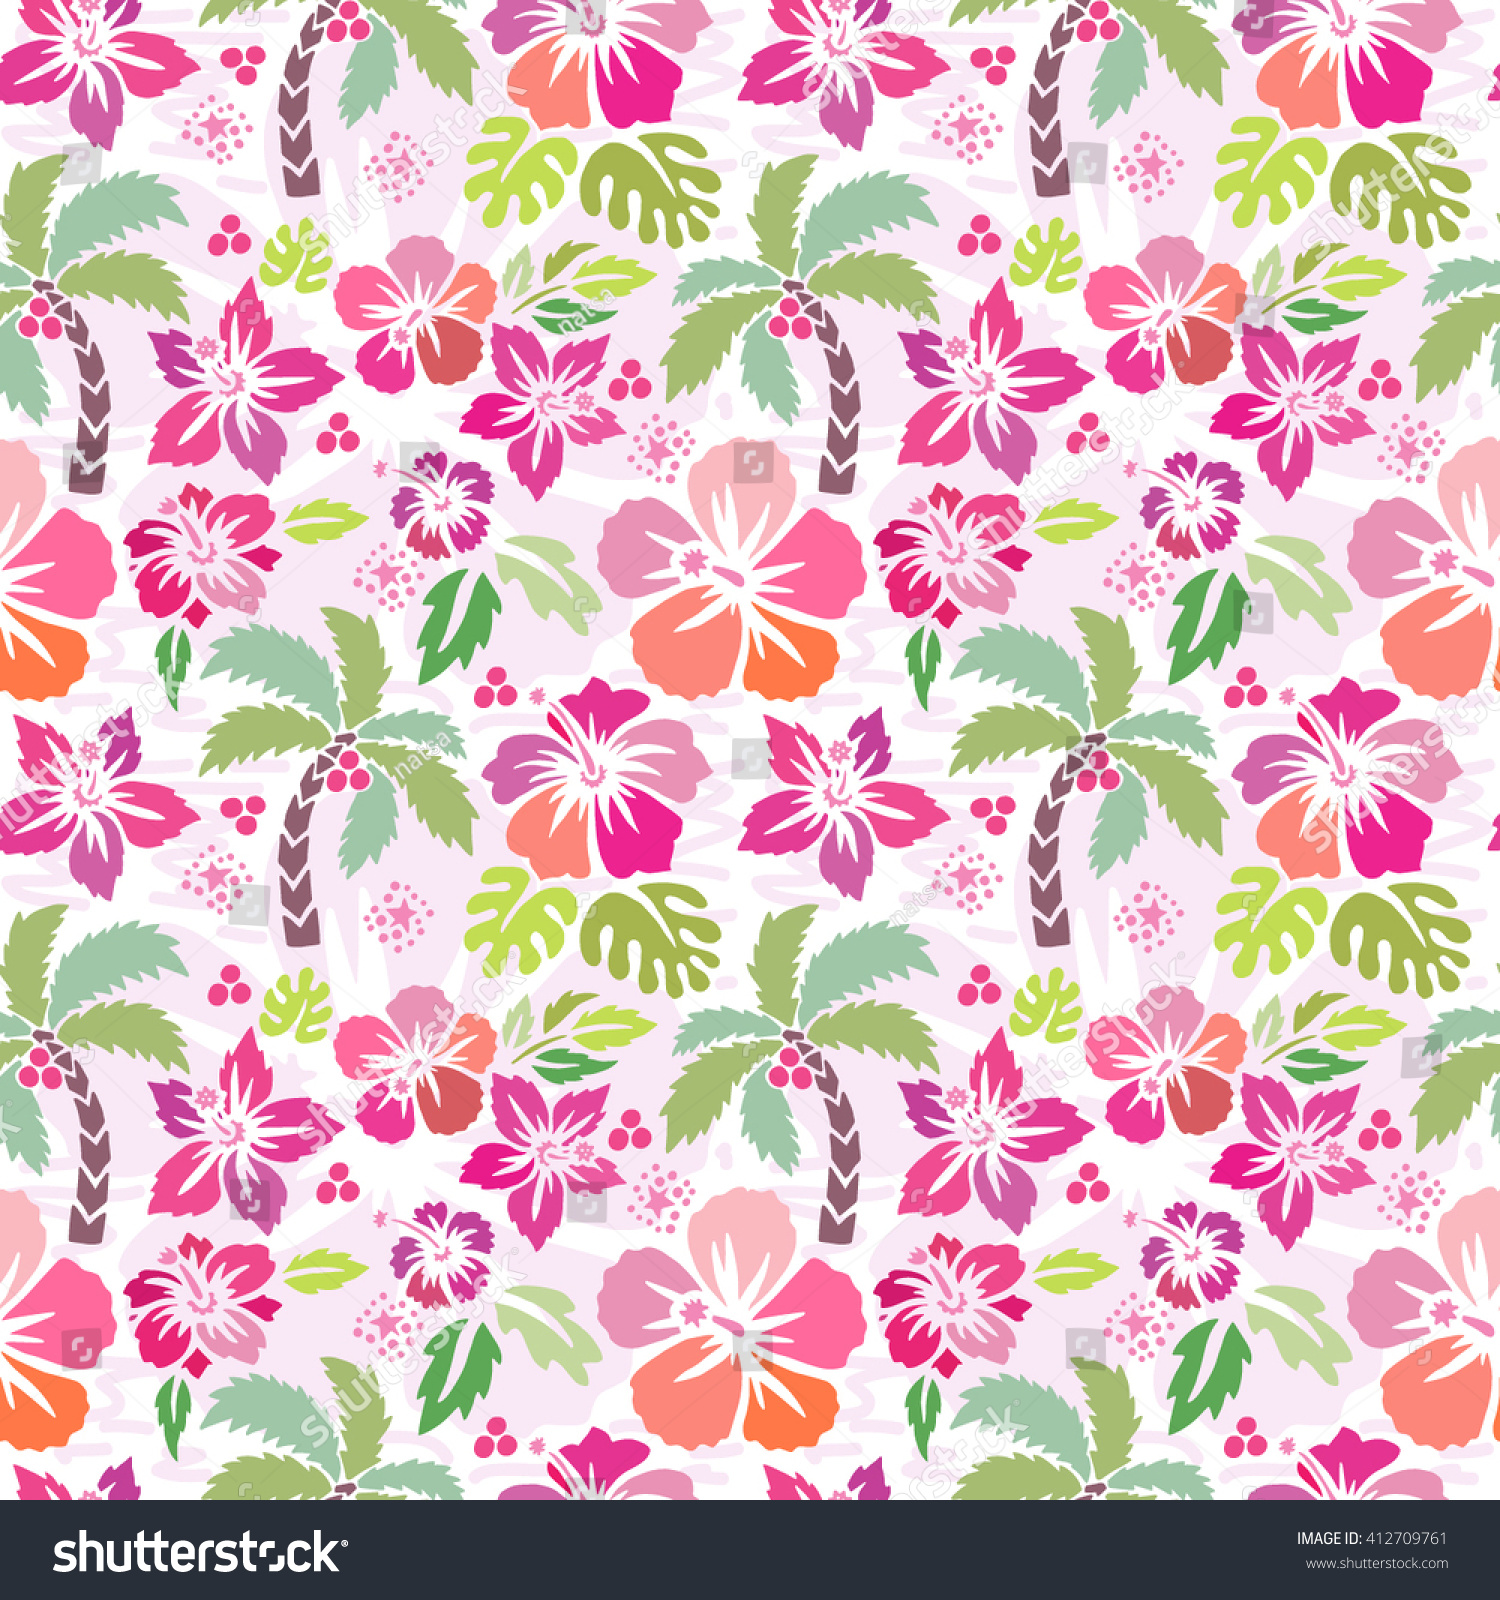 Fabric tree pattern - Seamless Vector Hibiscus And Palm Tree Pattern Illustration Tropical And Surf Design Good For